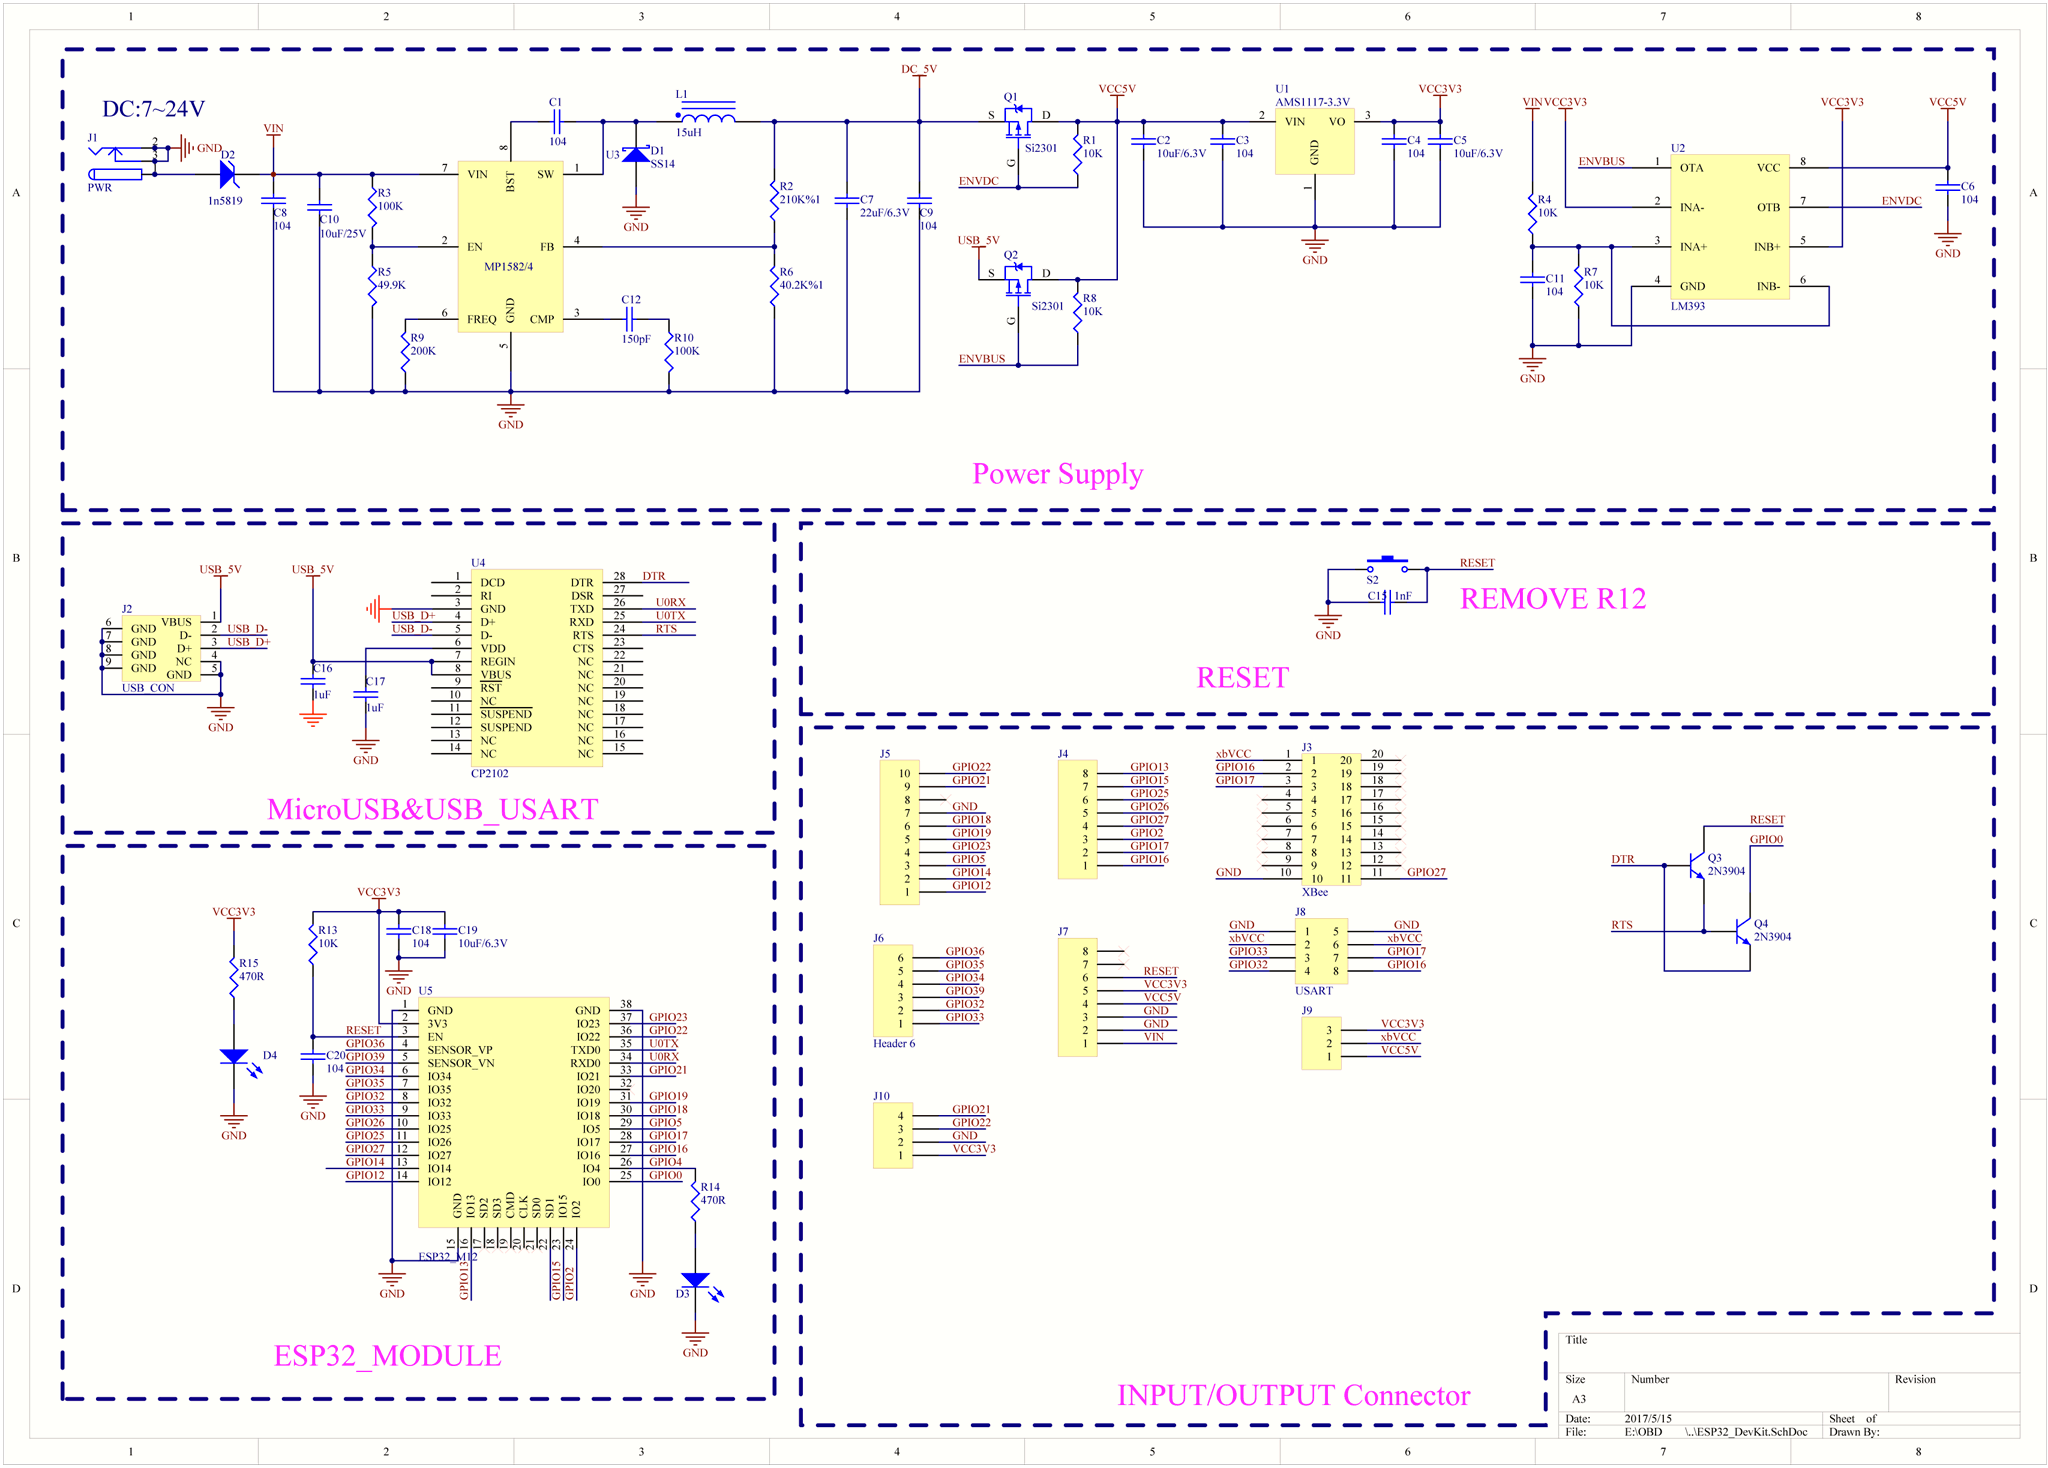 Kak Sdelat Usb Adapter as well Schematic Of Linux together with Freematics Esprit as well Can Bus Transceiver Schematic besides Ge863 Gps Tracker. on obd adapter for arduino schematic